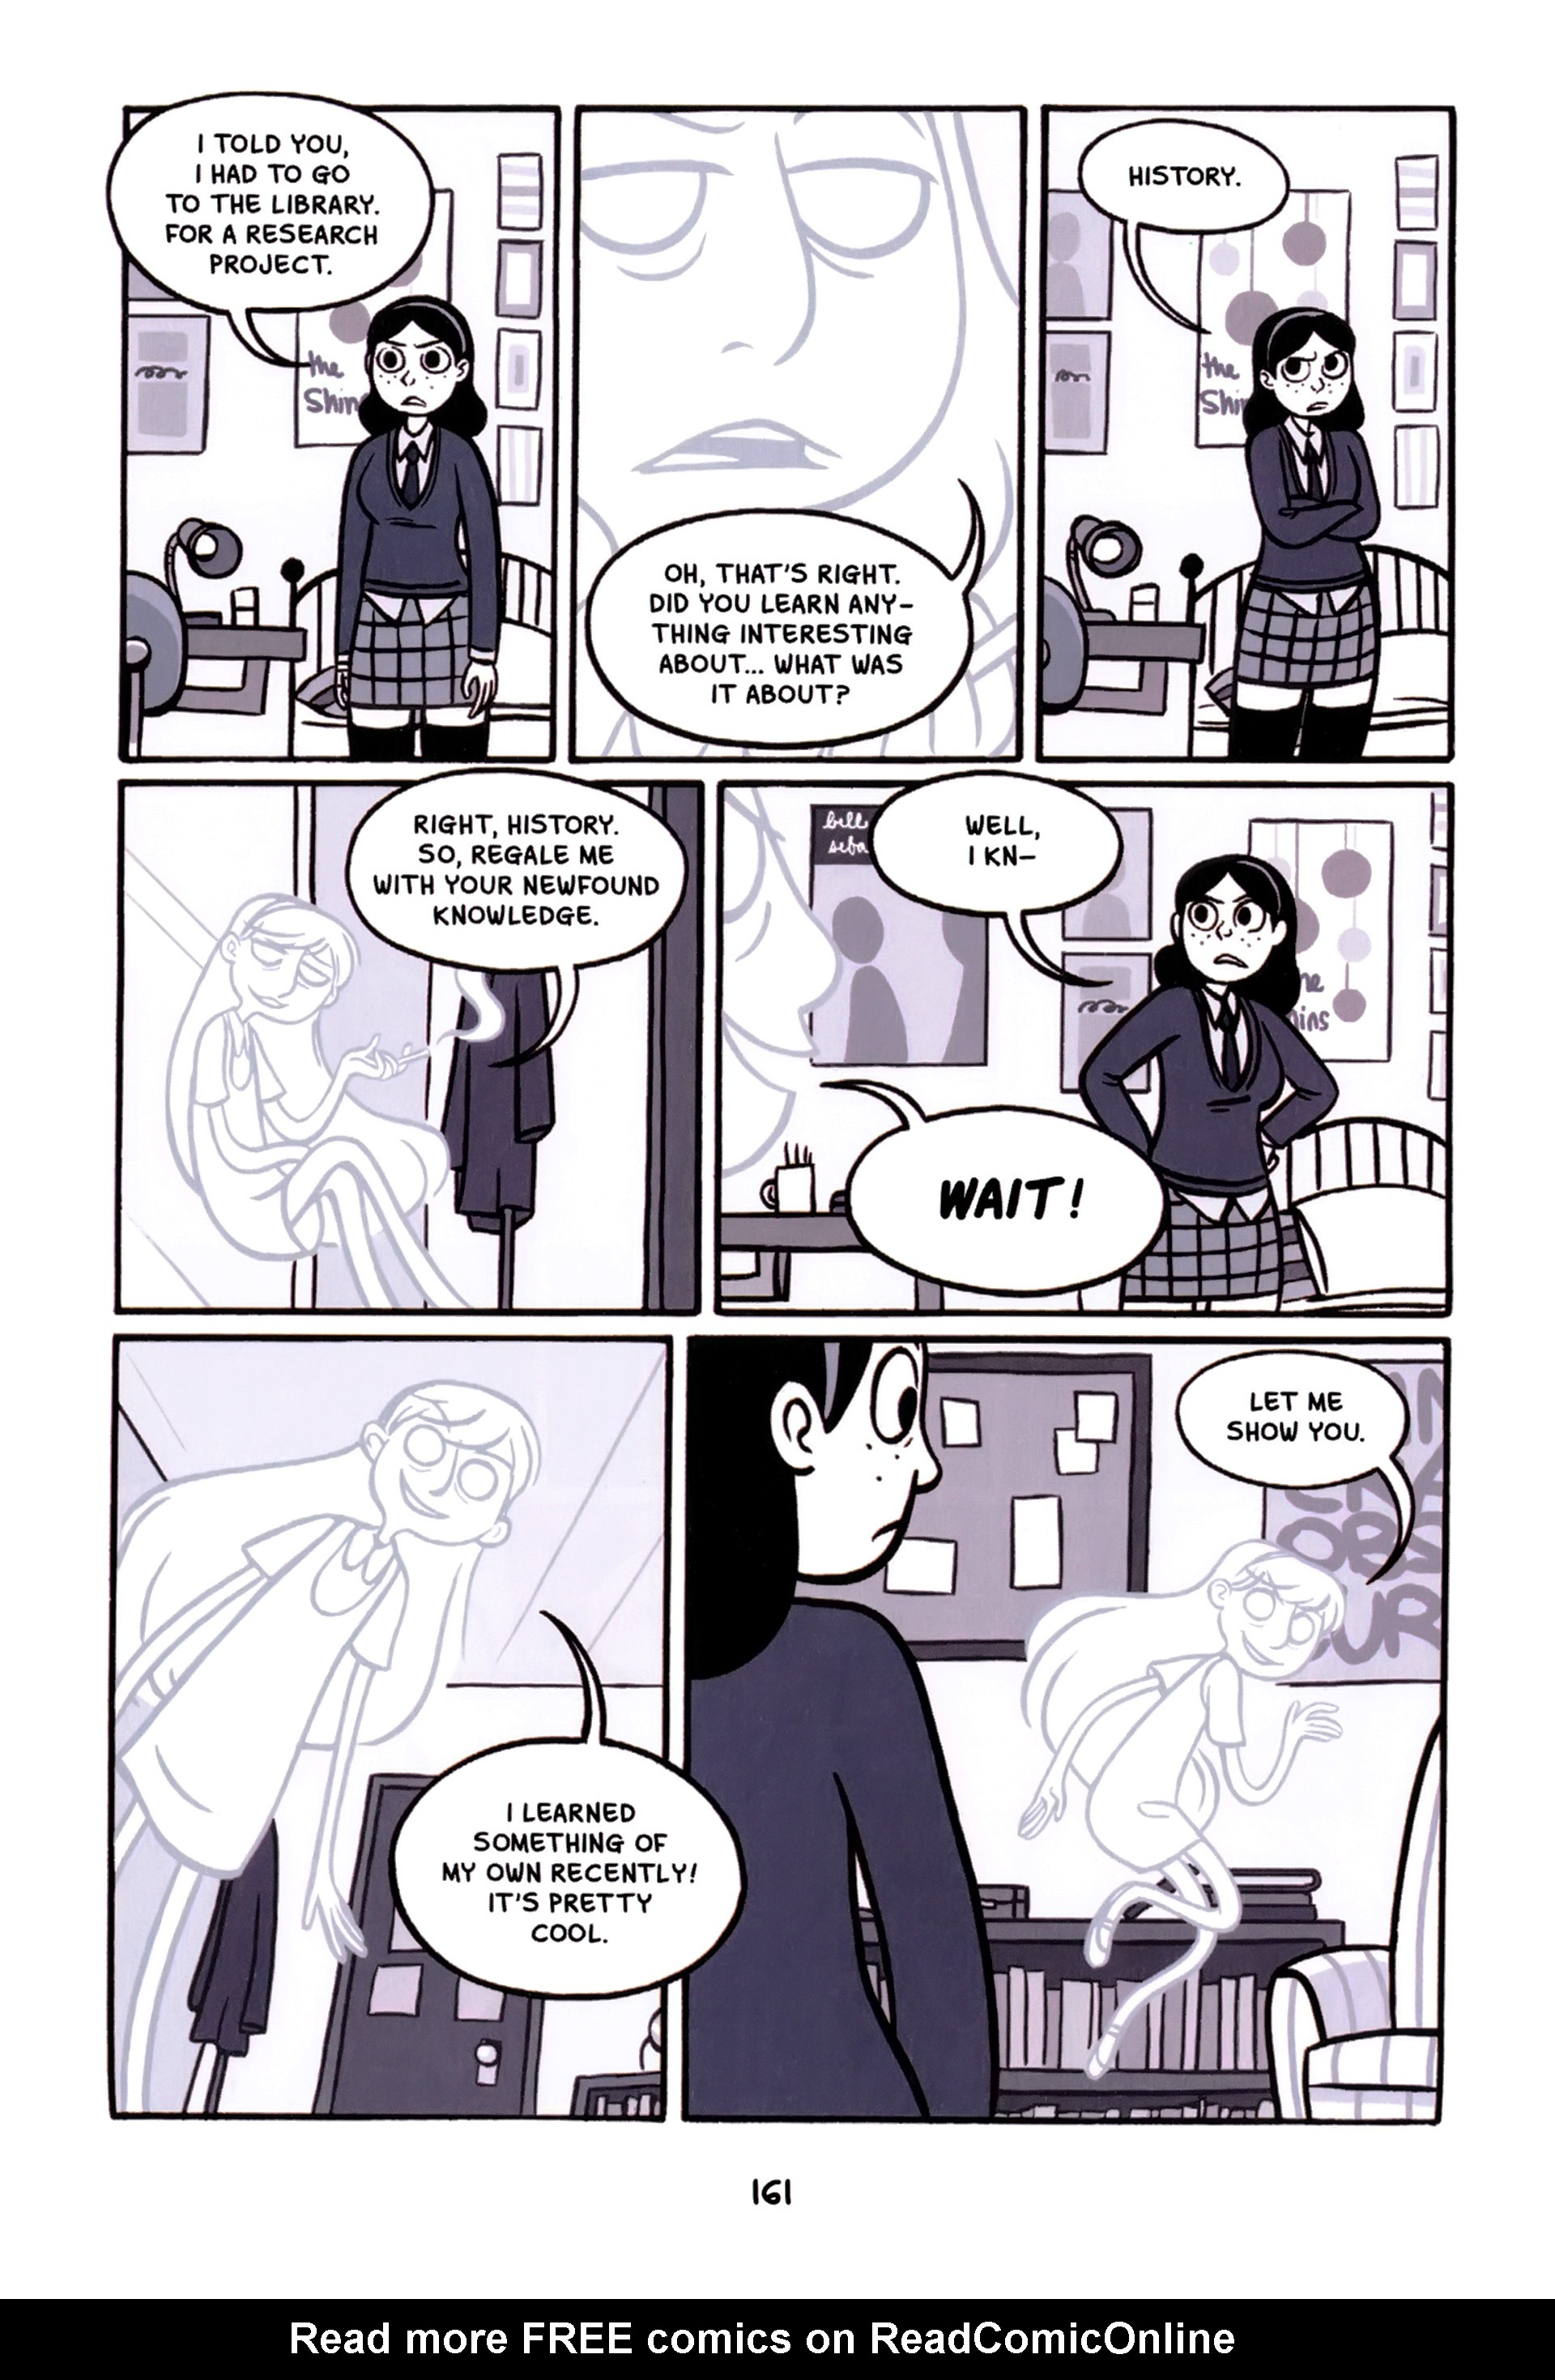 Read online Anya's Ghost comic -  Issue #1 - 162